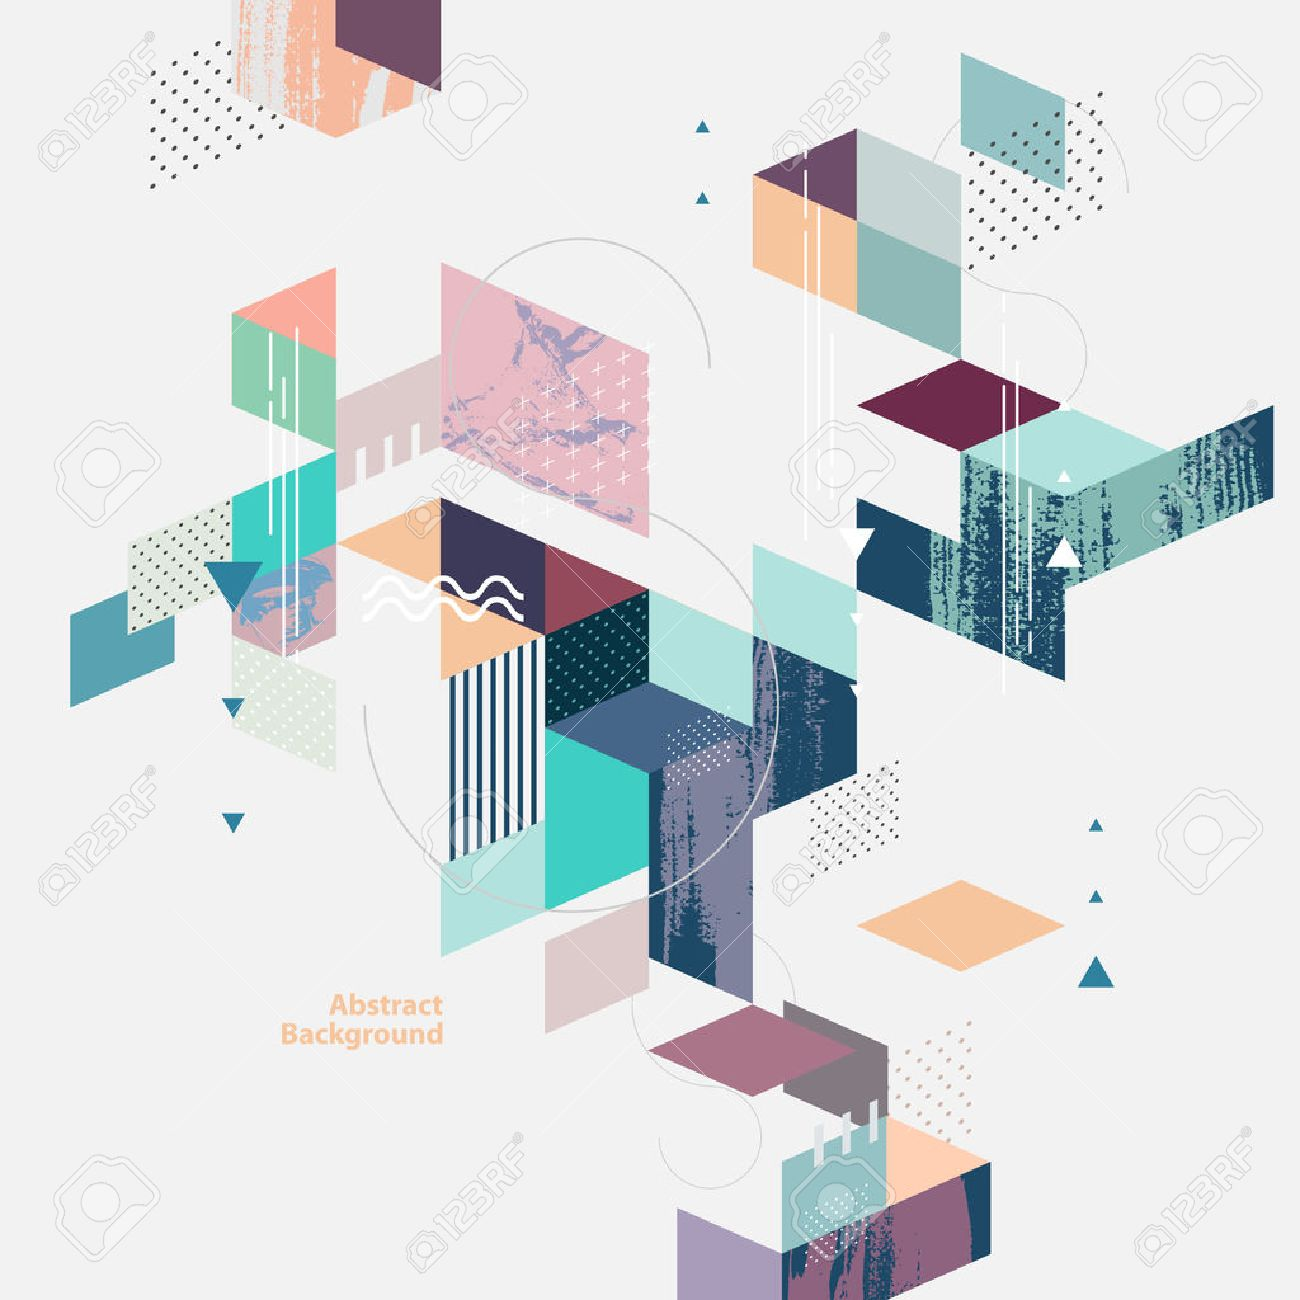 Abstract modern geometric background - 53542261